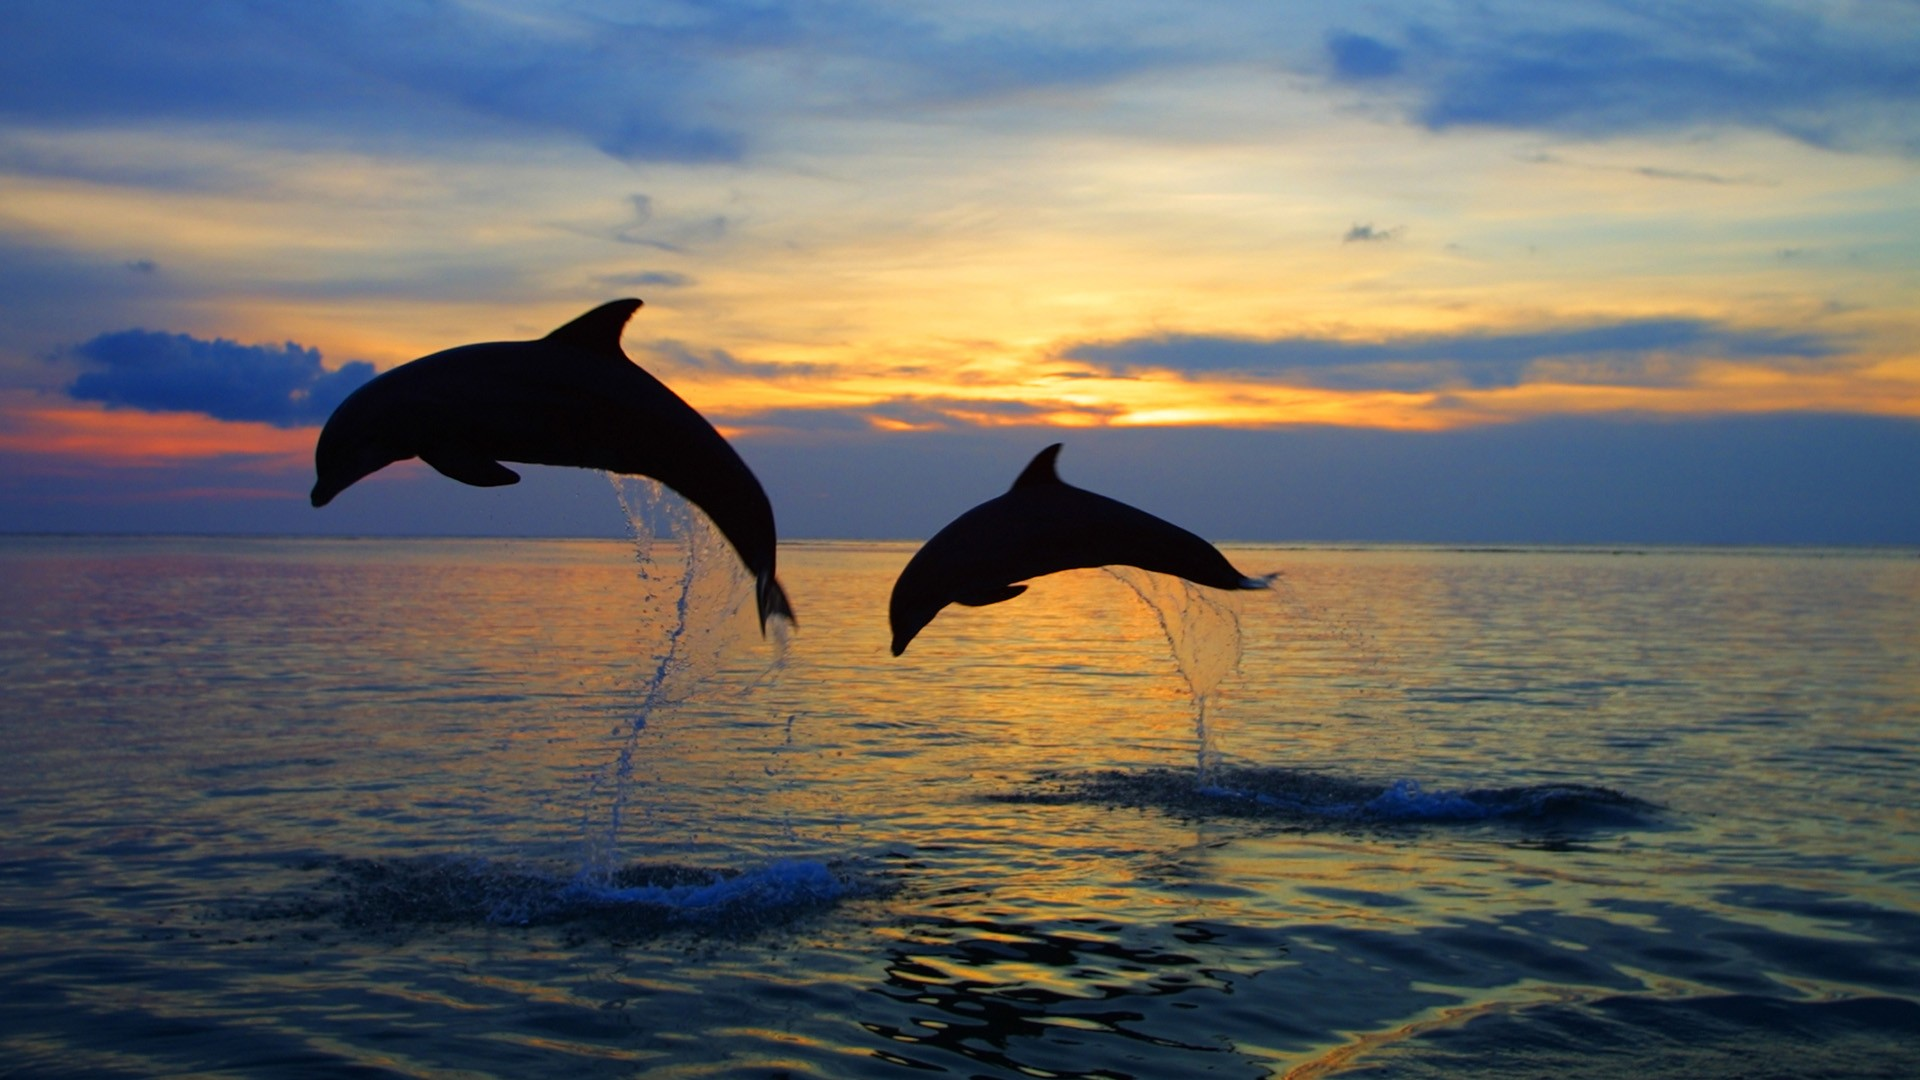 Dolphins Caribbean   hd wallpapers for windows 7   Dolphins Caribbean 1920x1080